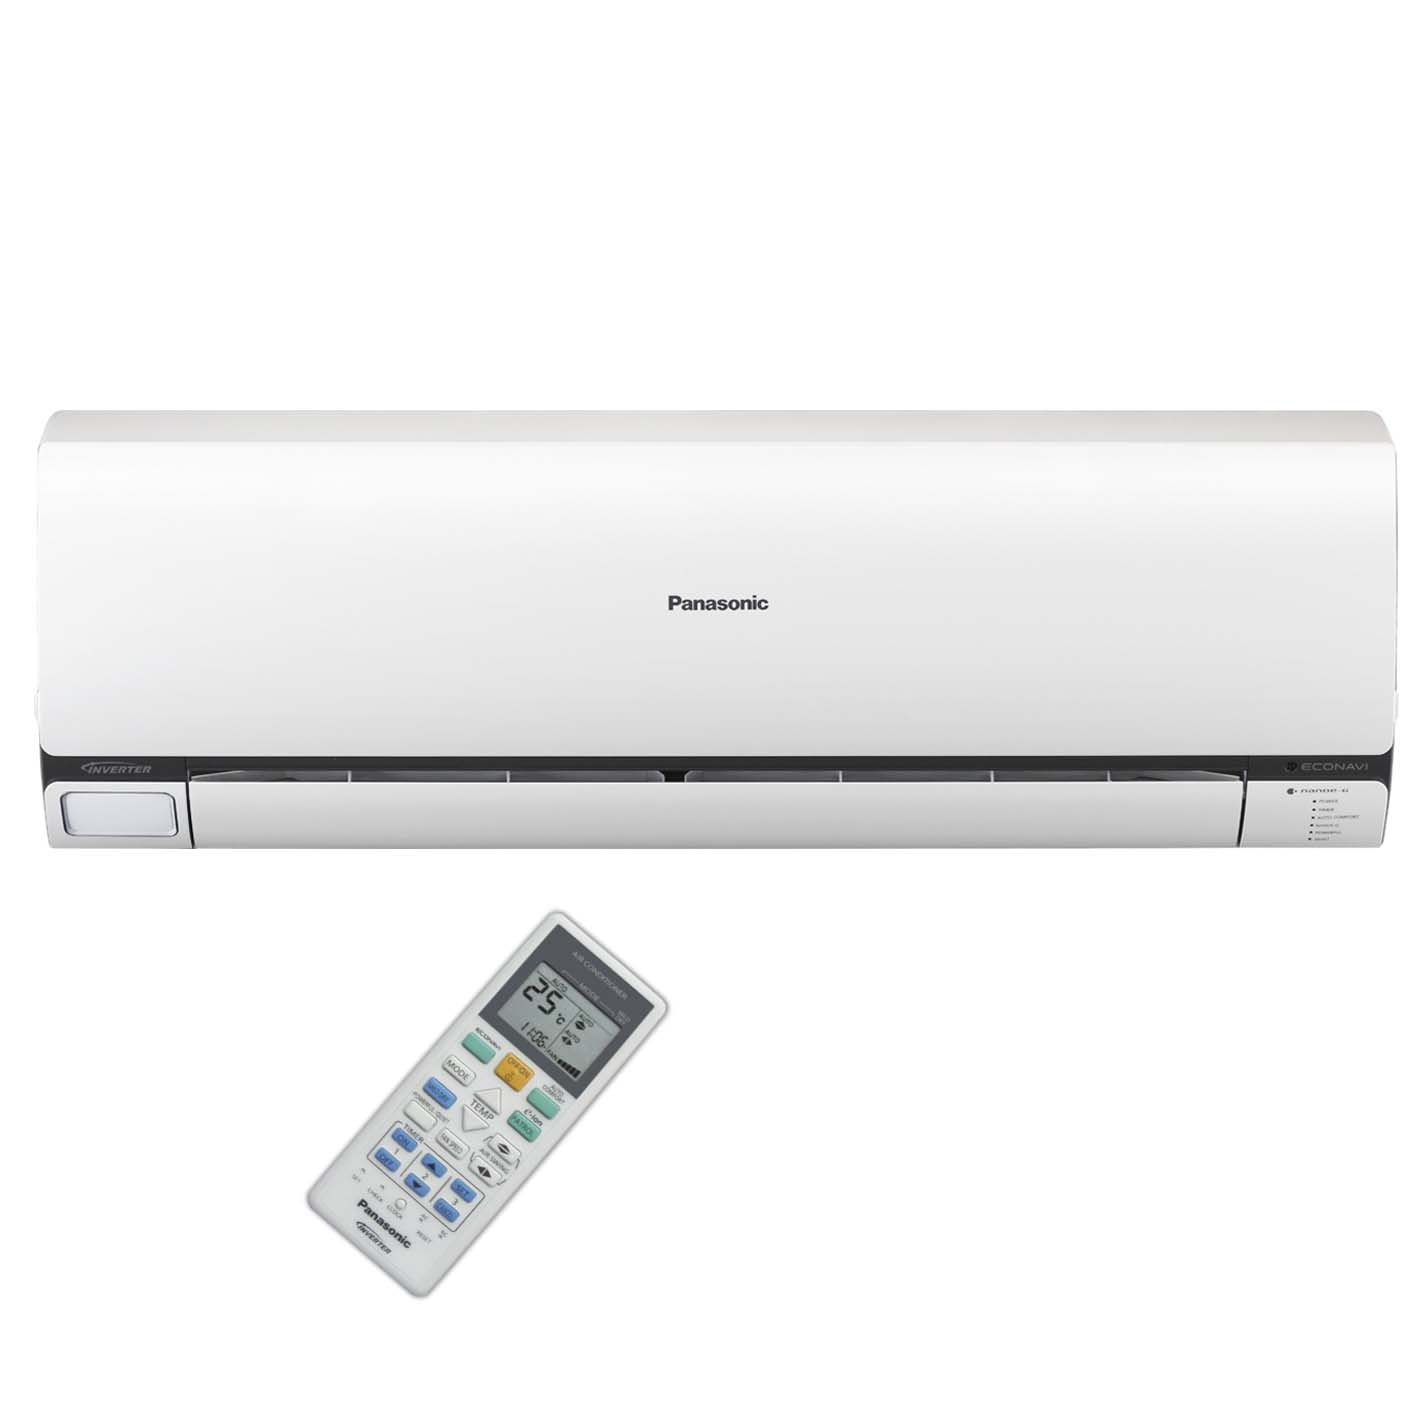 #987733 Panasonic CS S24PKH 2.0 Ton Inverter AC Price In  Recommended 11247 Bluetooth Air Conditioner pics with 1425x1425 px on helpvideos.info - Air Conditioners, Air Coolers and more